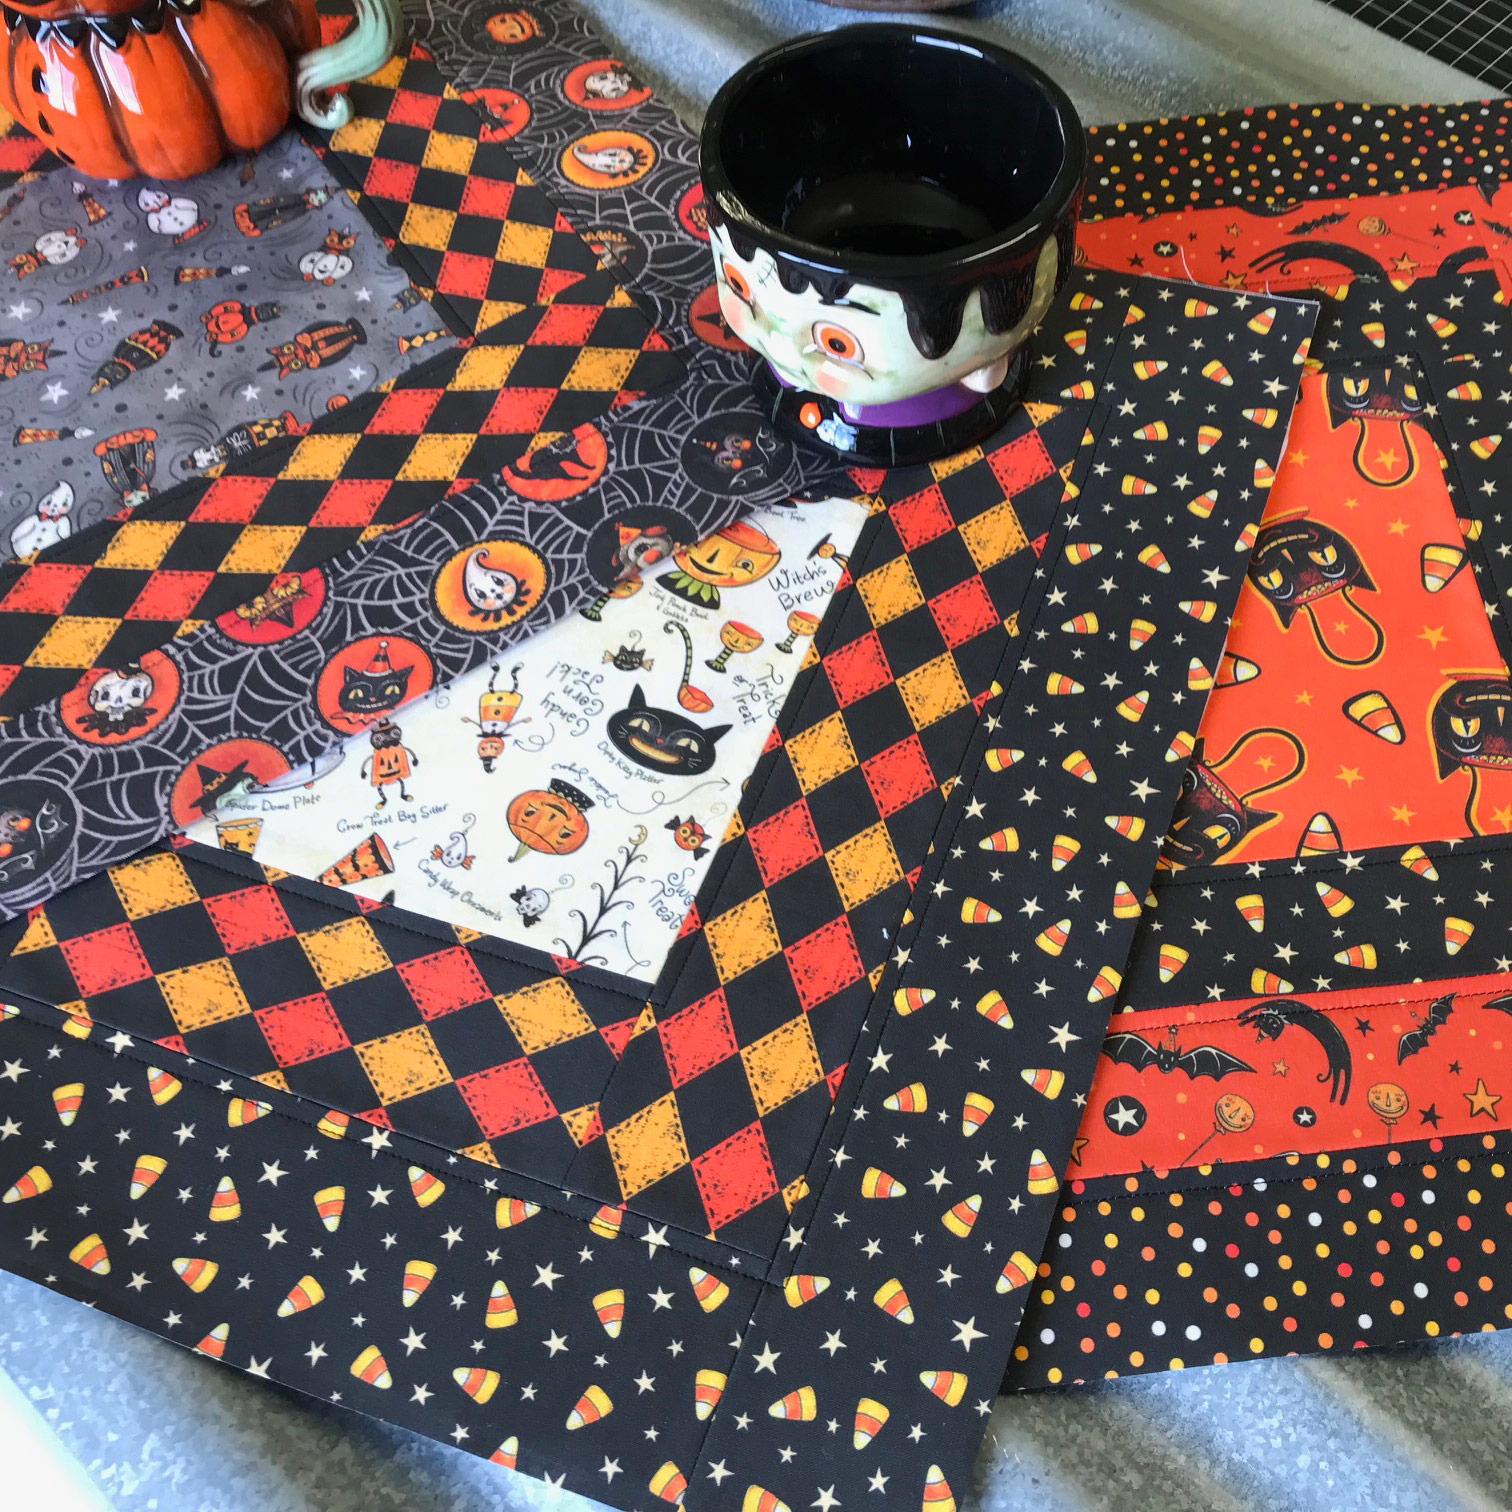 Halloween Table Toppers by @roadsidecottage (on Instagram) using Johanna Parker Design Halloween fabric from Spoonflower.